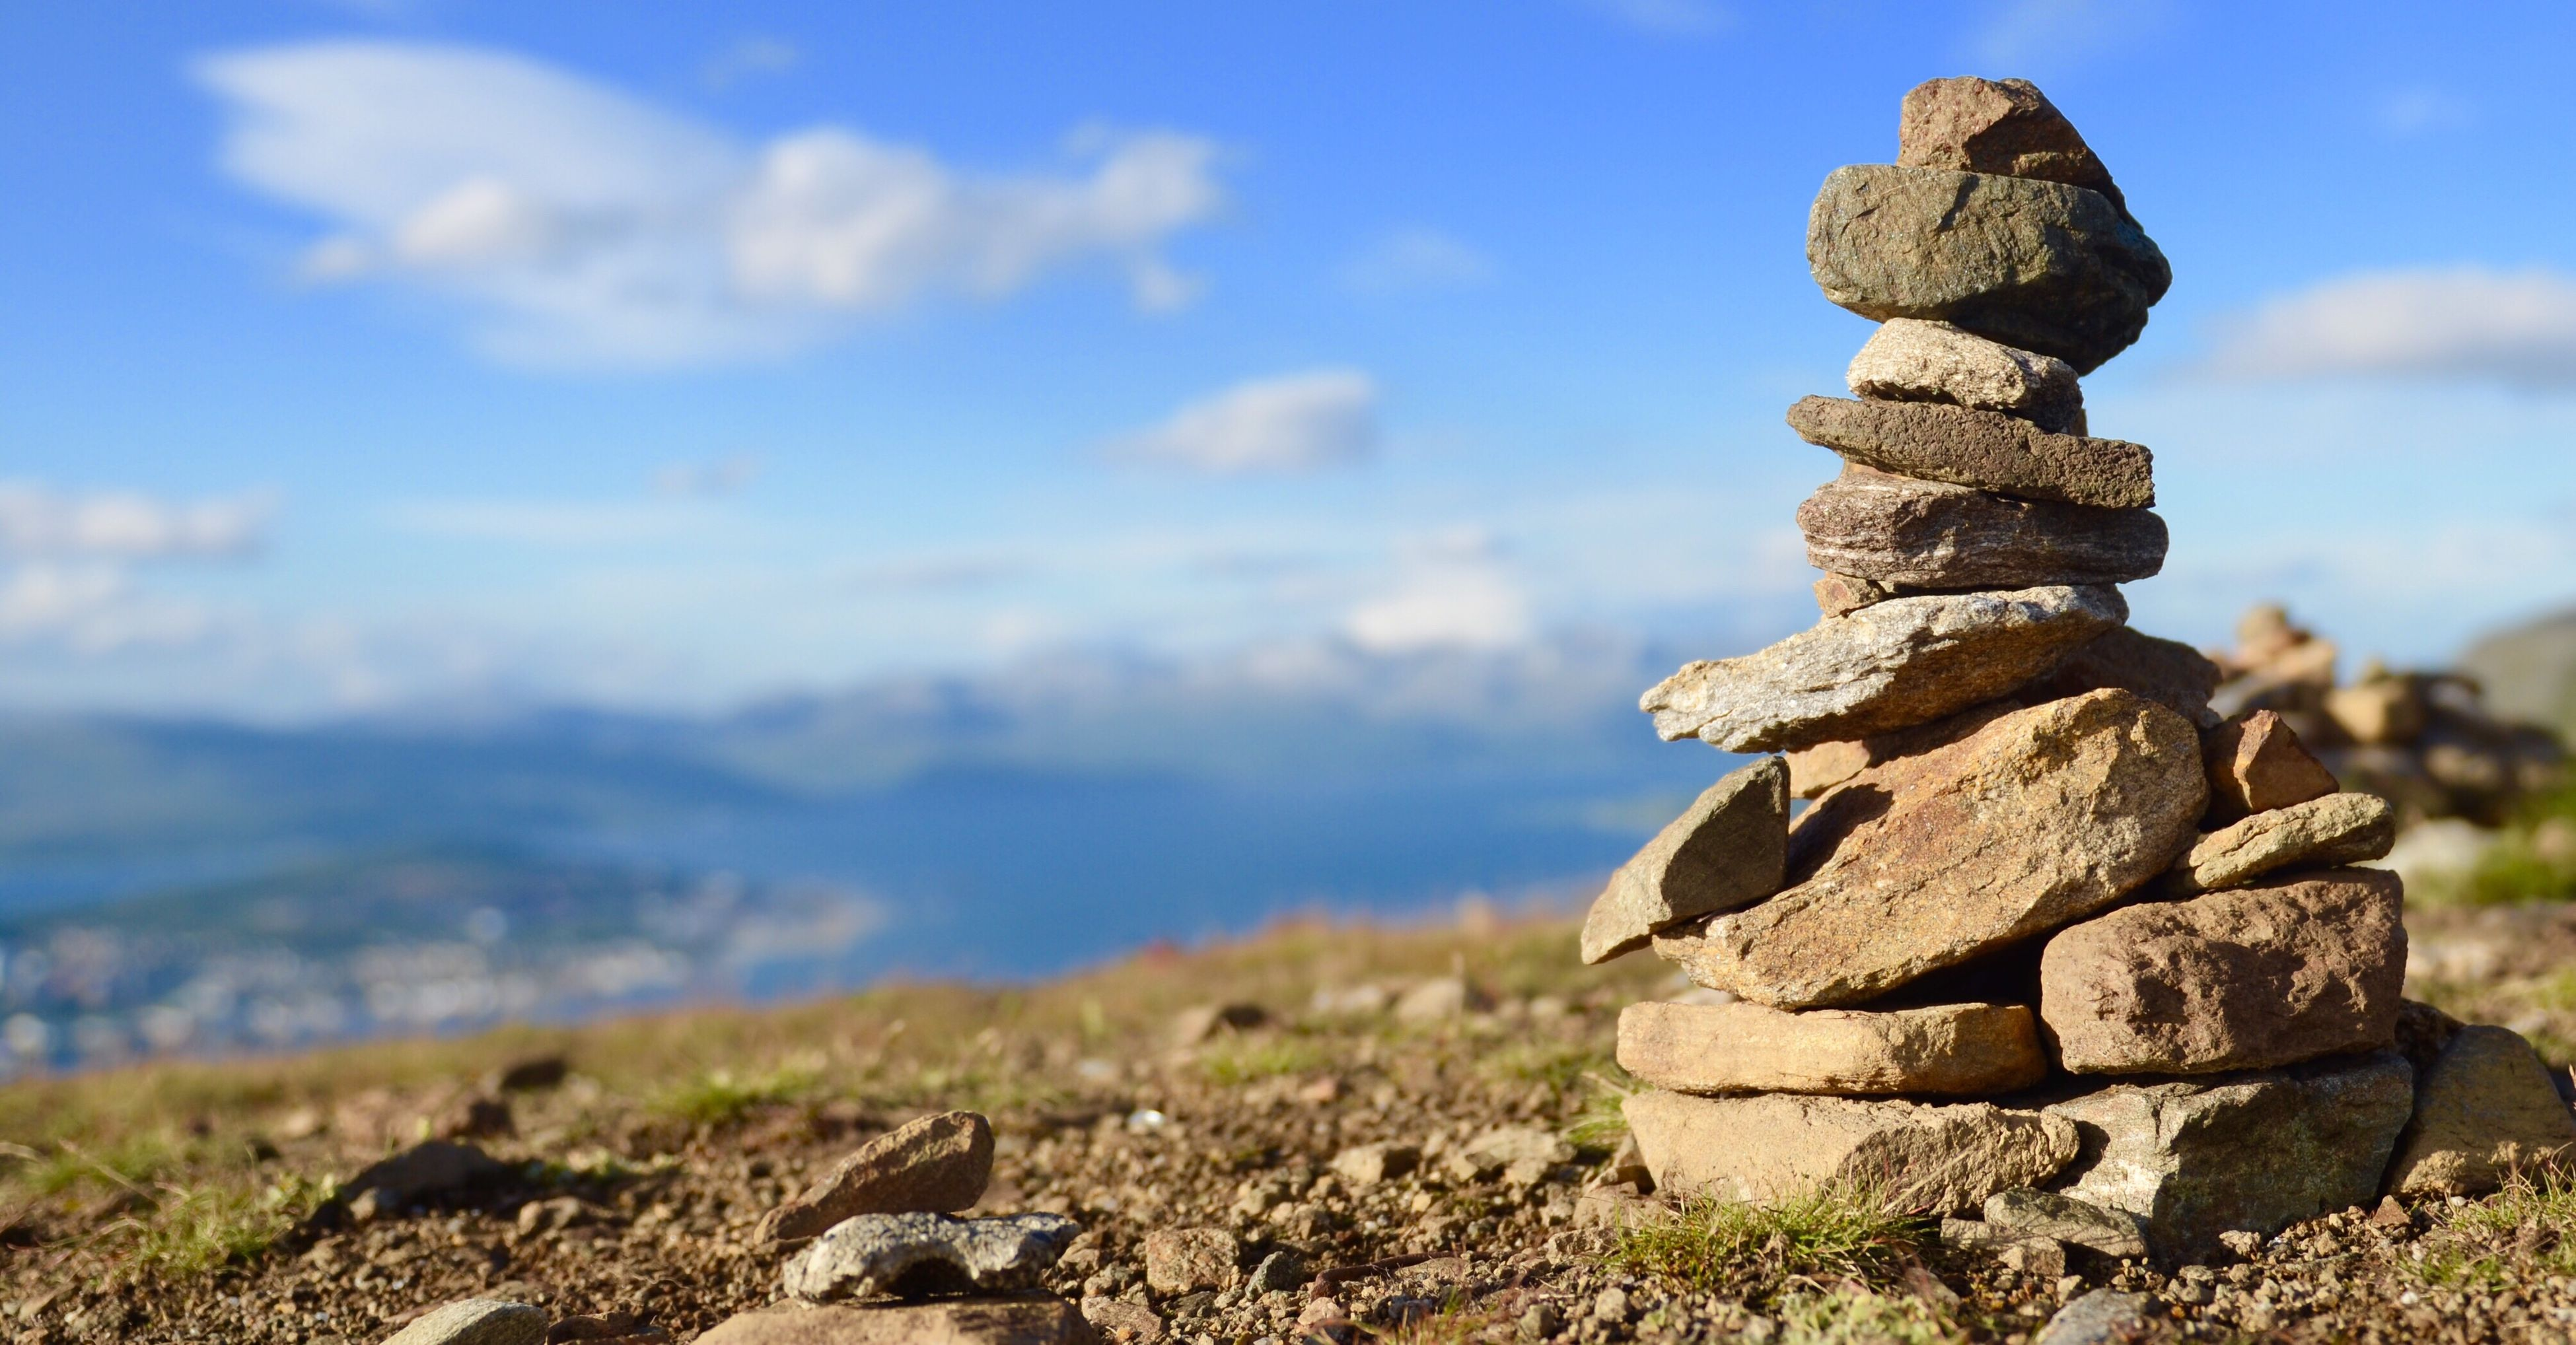 rock - object, day, balance, focus on foreground, stack, outdoors, nature, tranquility, no people, sky, tranquil scene, sunlight, cloud - sky, scenics, beauty in nature, close-up, mountain